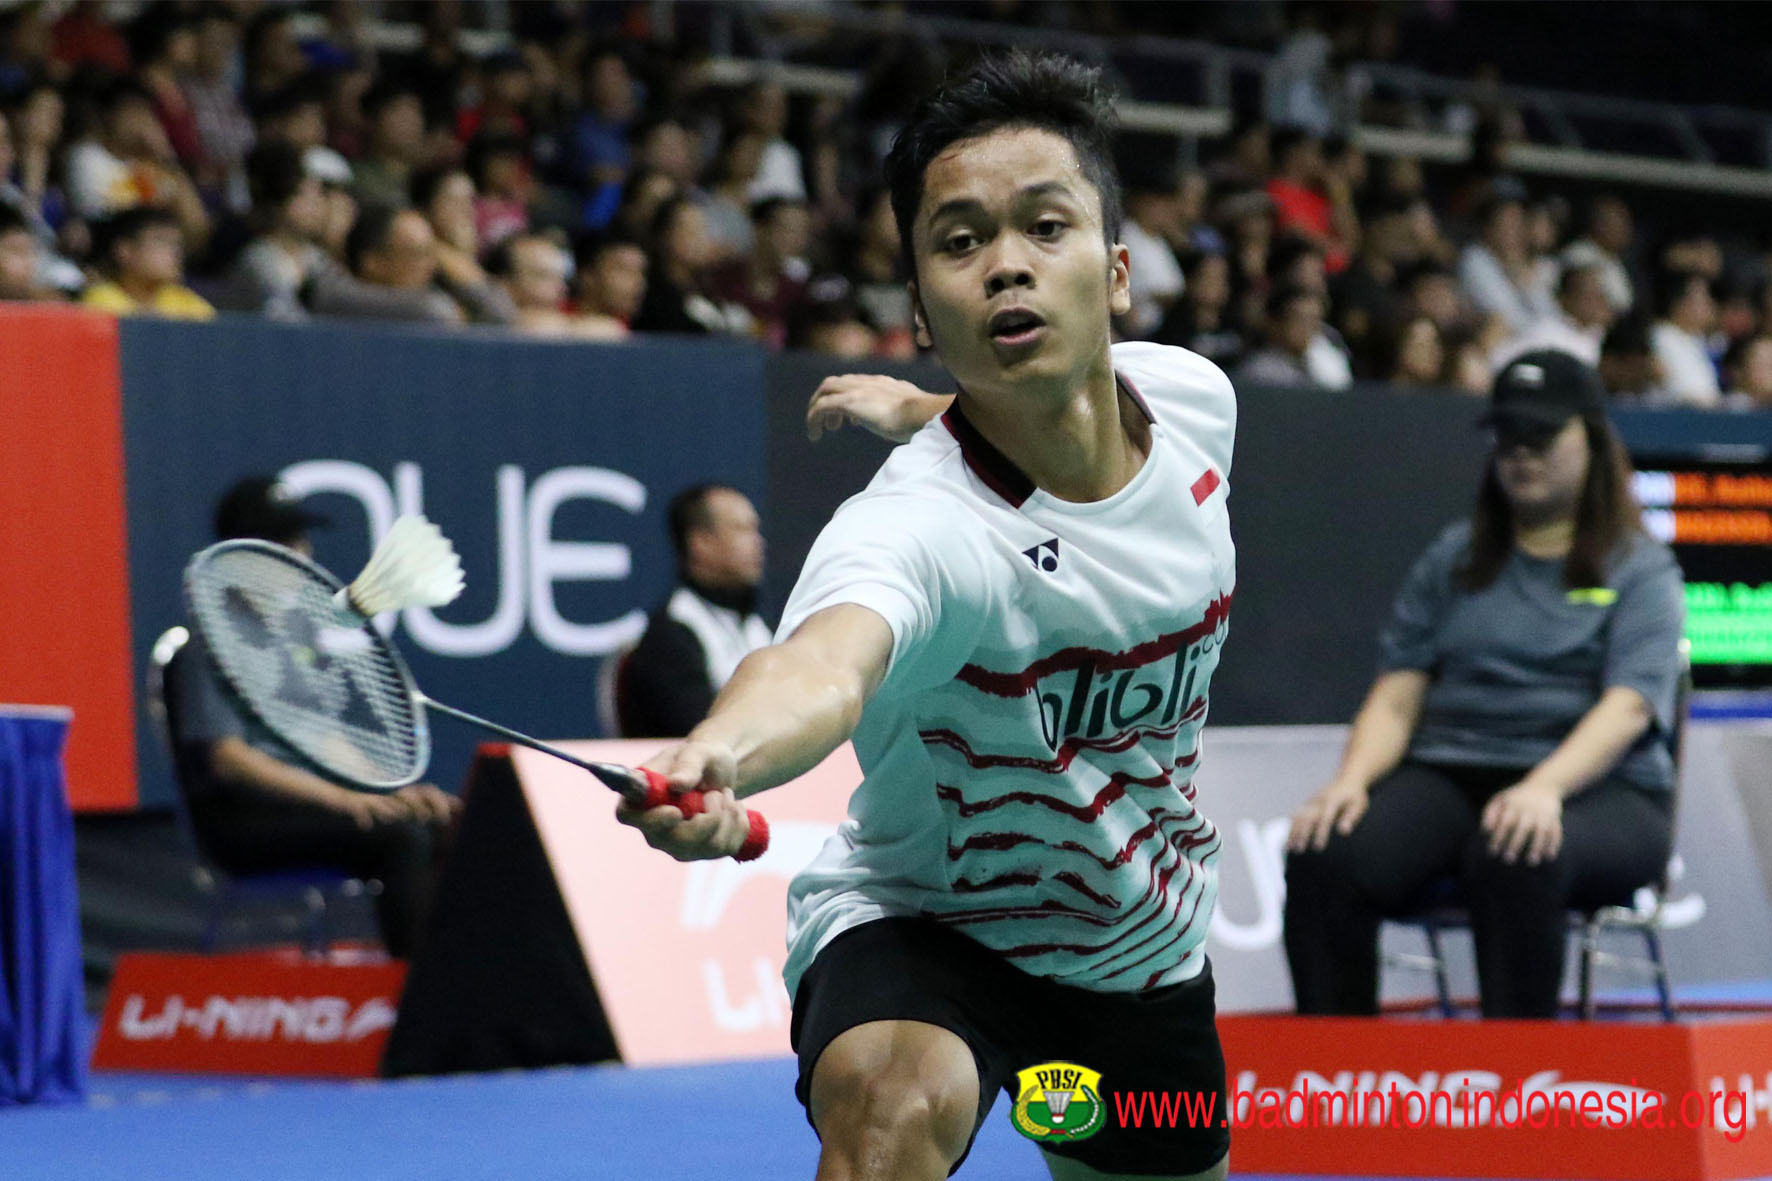 Djarum Badminton Singapore Open 2017 Anthony Susul Langkah